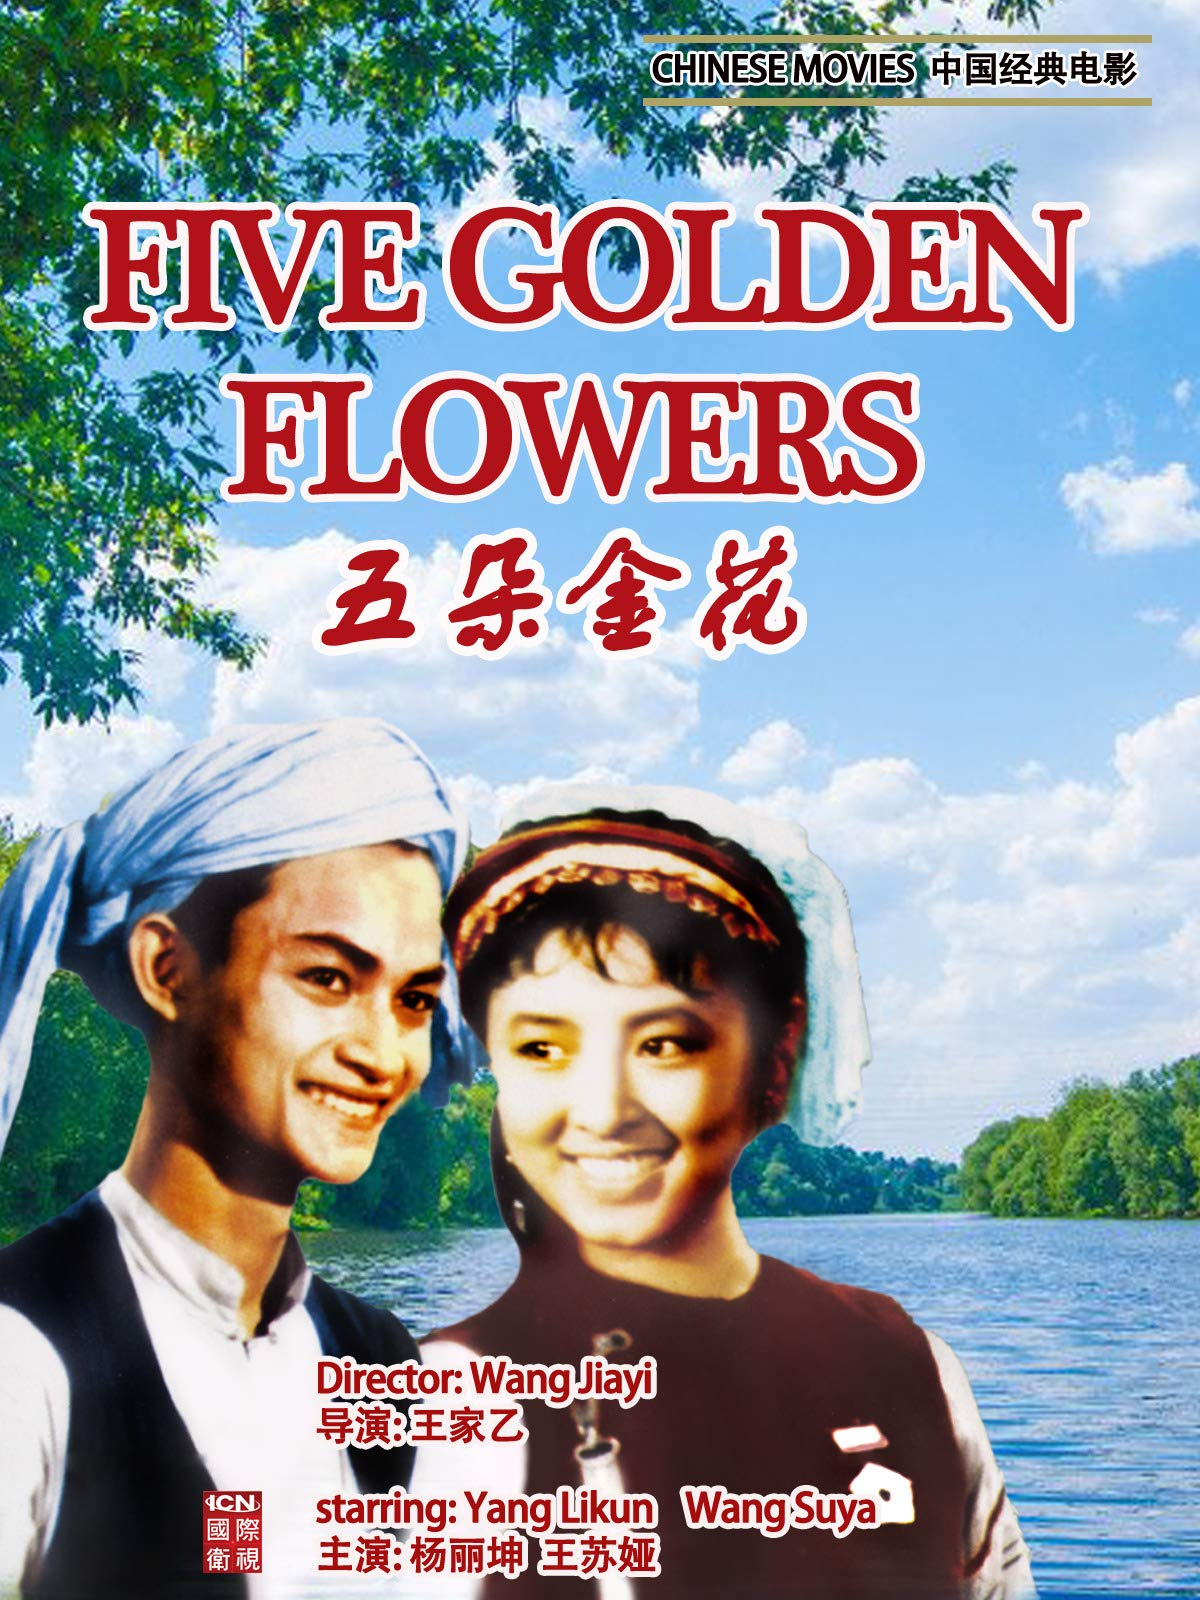 Chinese Movies-Five Golden Flowers